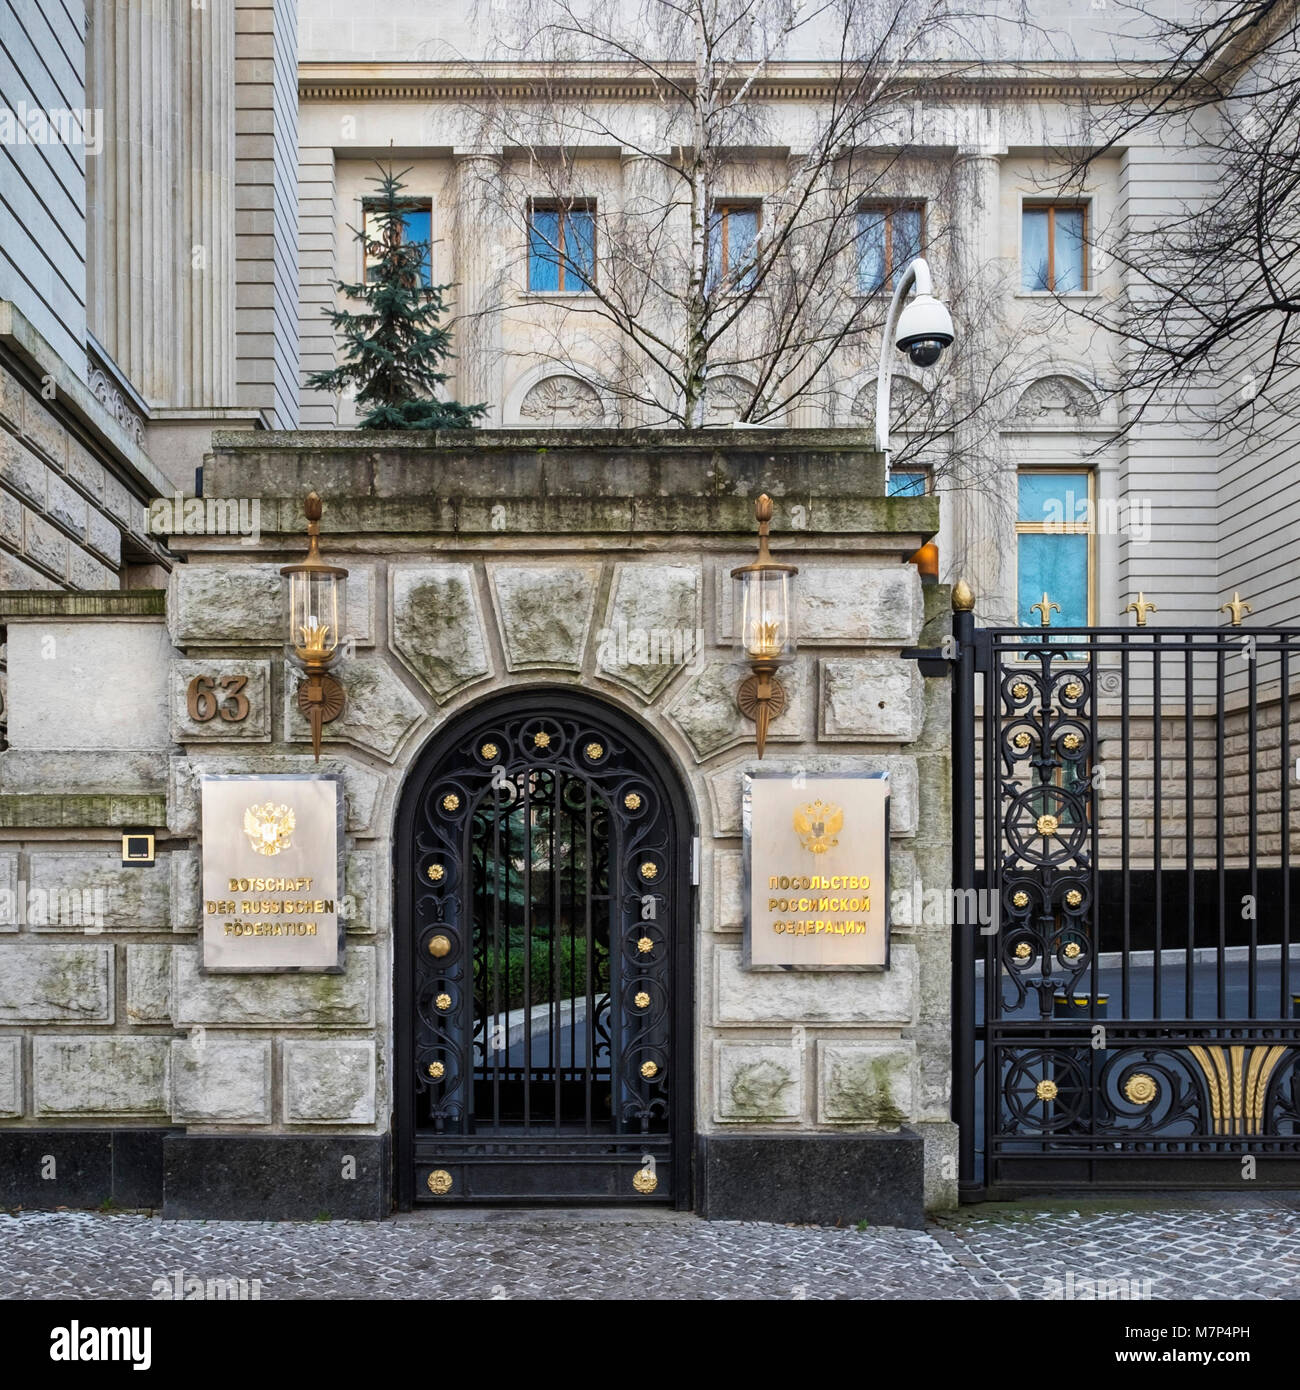 Berlin-Mitte,Unter den Linden, Embassy of the Russian Federation. Building entrance with ornate gate and lamps - Stock Image